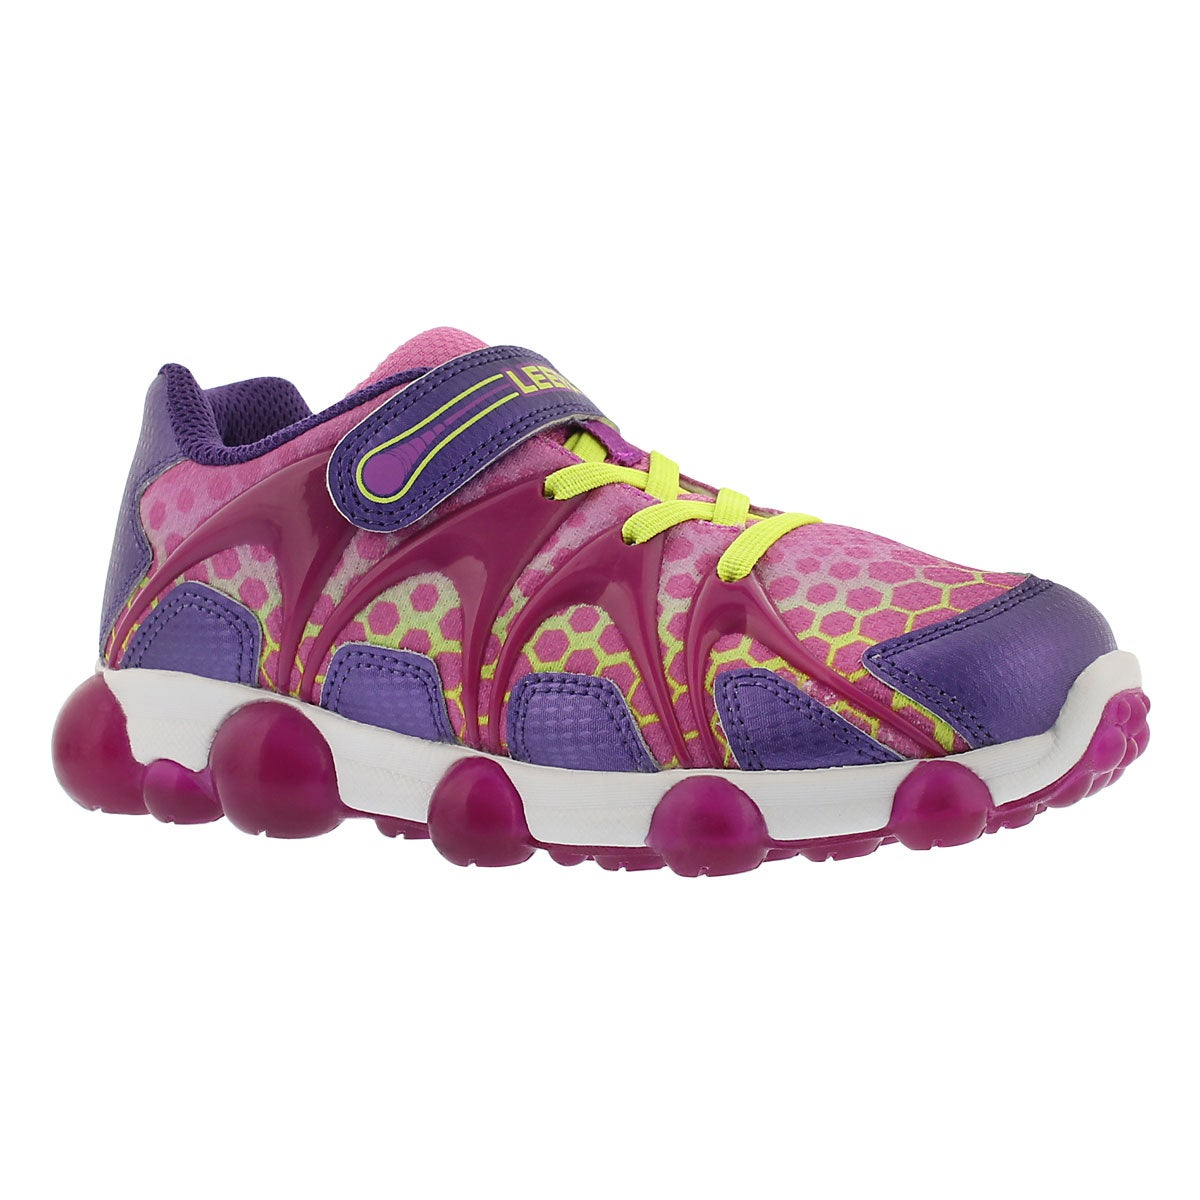 Grls Leepz purple/lime light up sneaker